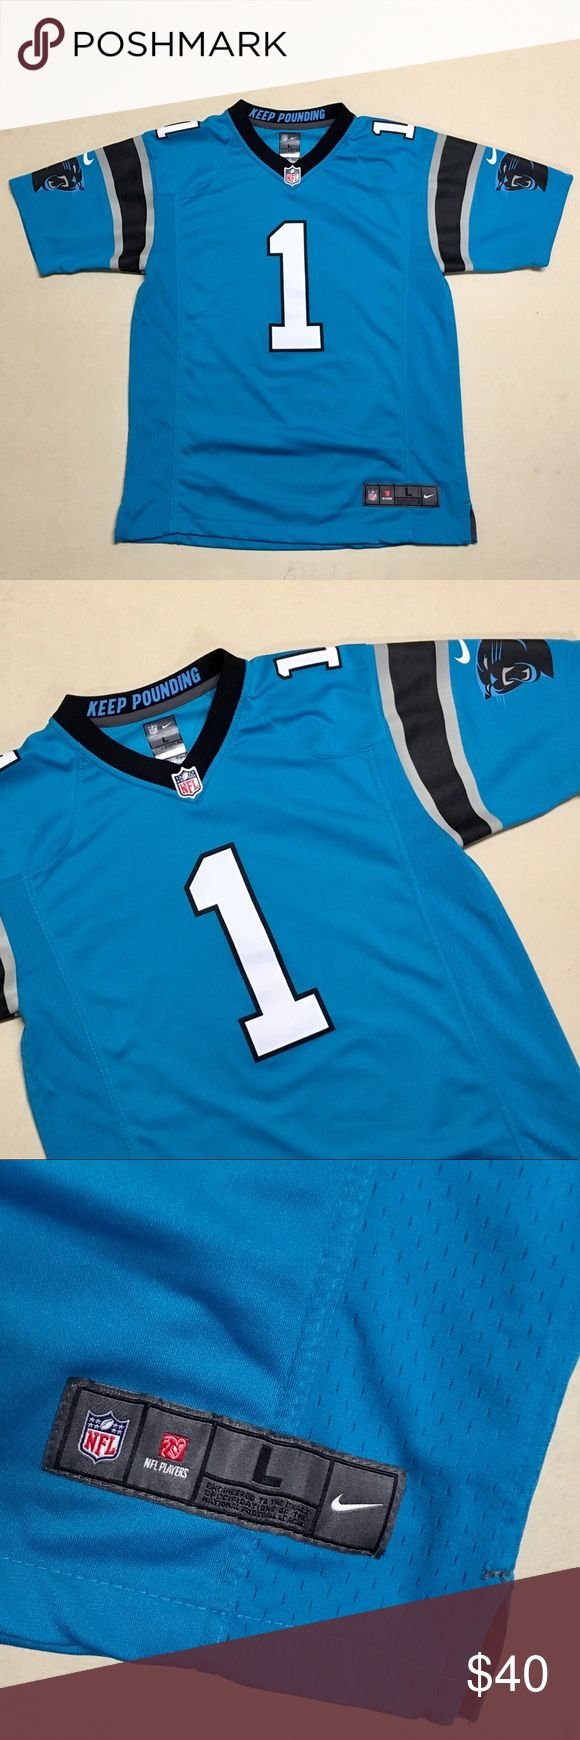 Cam Newton - Nike On Field Youth Jersey 🏈 Carolina Panthers  Cam Newton Jersey   Nike On Field  Size Youth Large  Fits a Women's Small   New without tags!!   🏈🏈🏈 Nike Shirts & Tops Tees - Short Sleeve